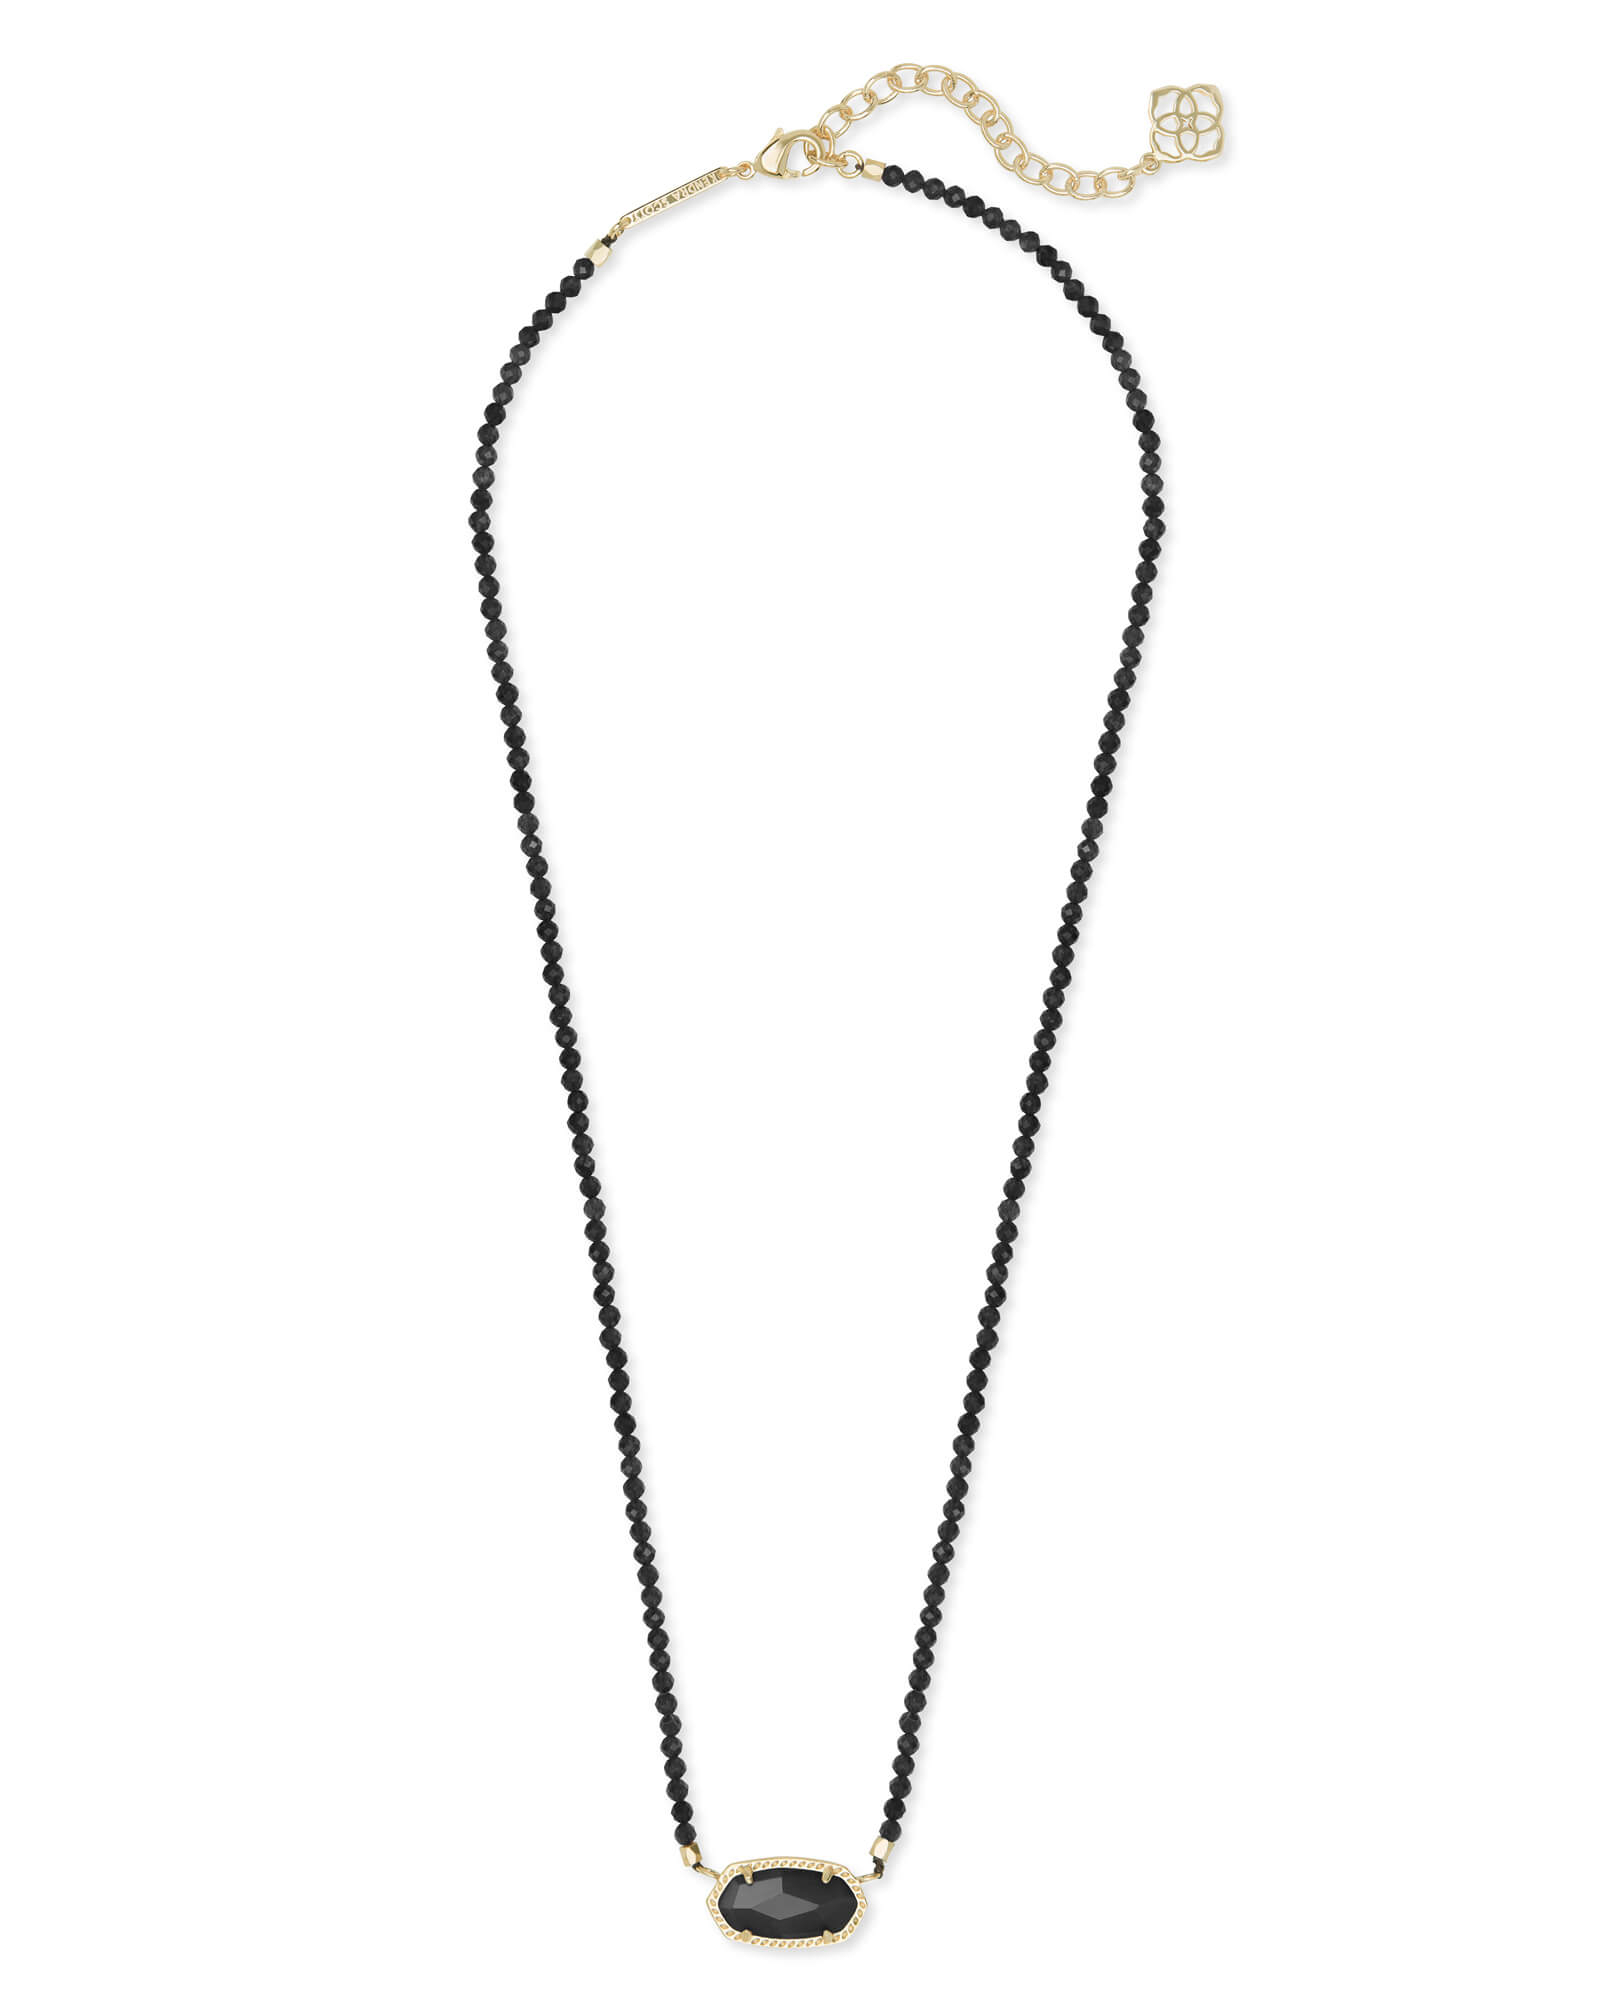 Elisa Gold Beaded Pendant Necklace | Kendra Scott Intended For Recent Beaded Chain Necklaces (View 13 of 25)